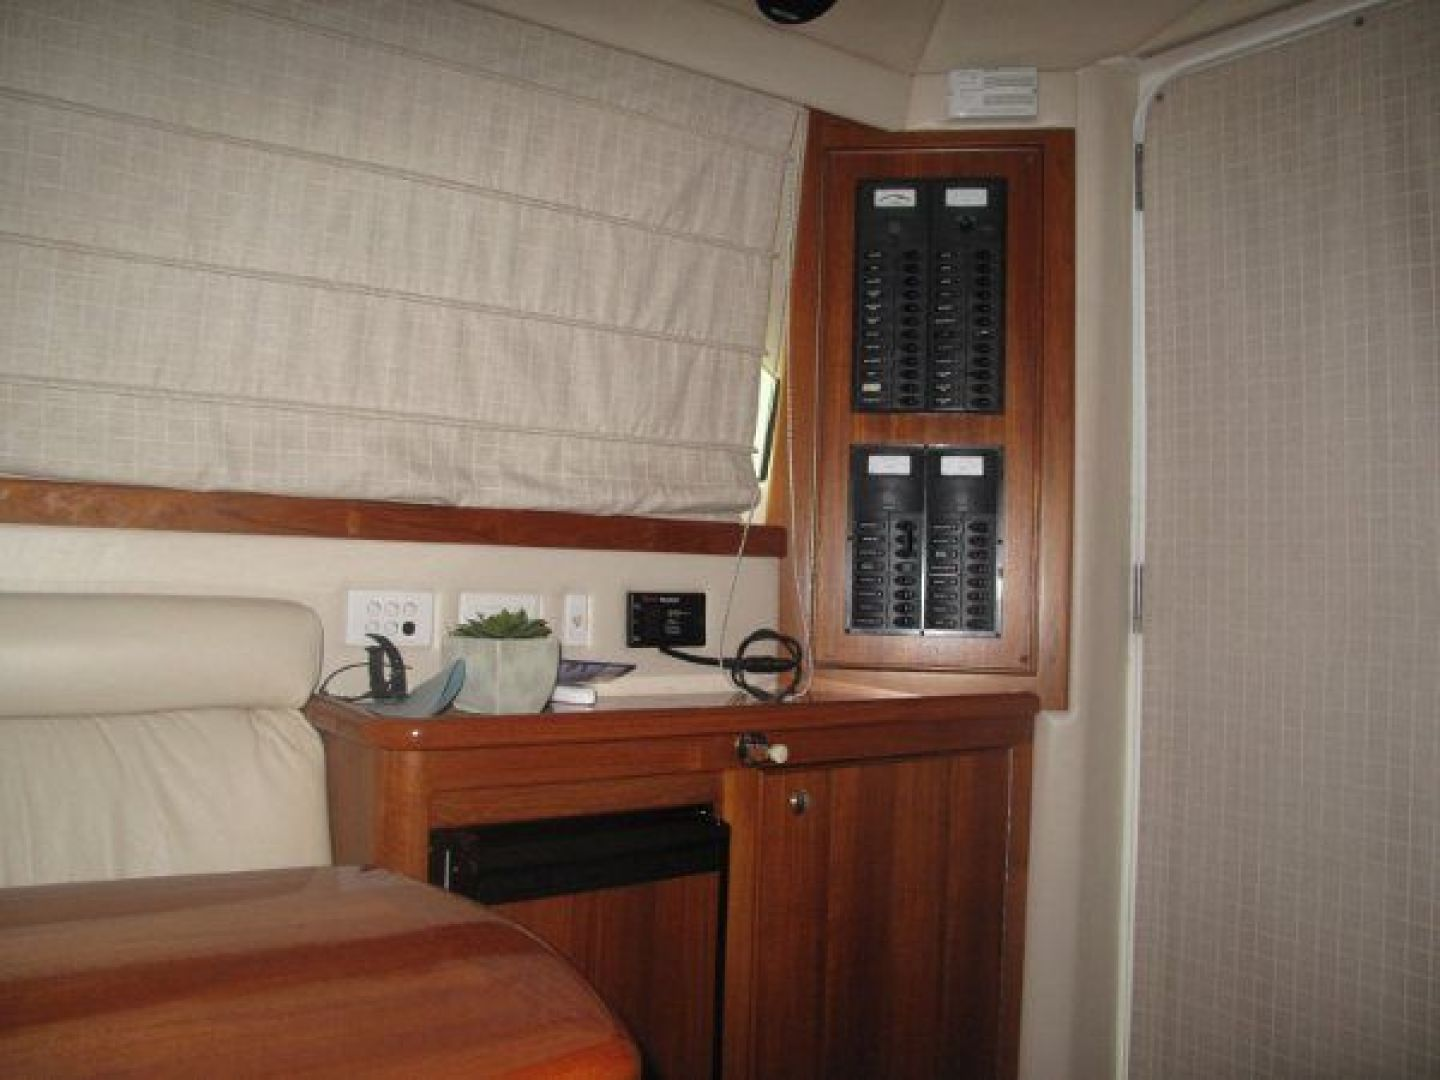 Riviera-Flybridge-2004-No-Name-Curacao-Netherlands-Antilles-(NL)-Electrical-Panel-924165